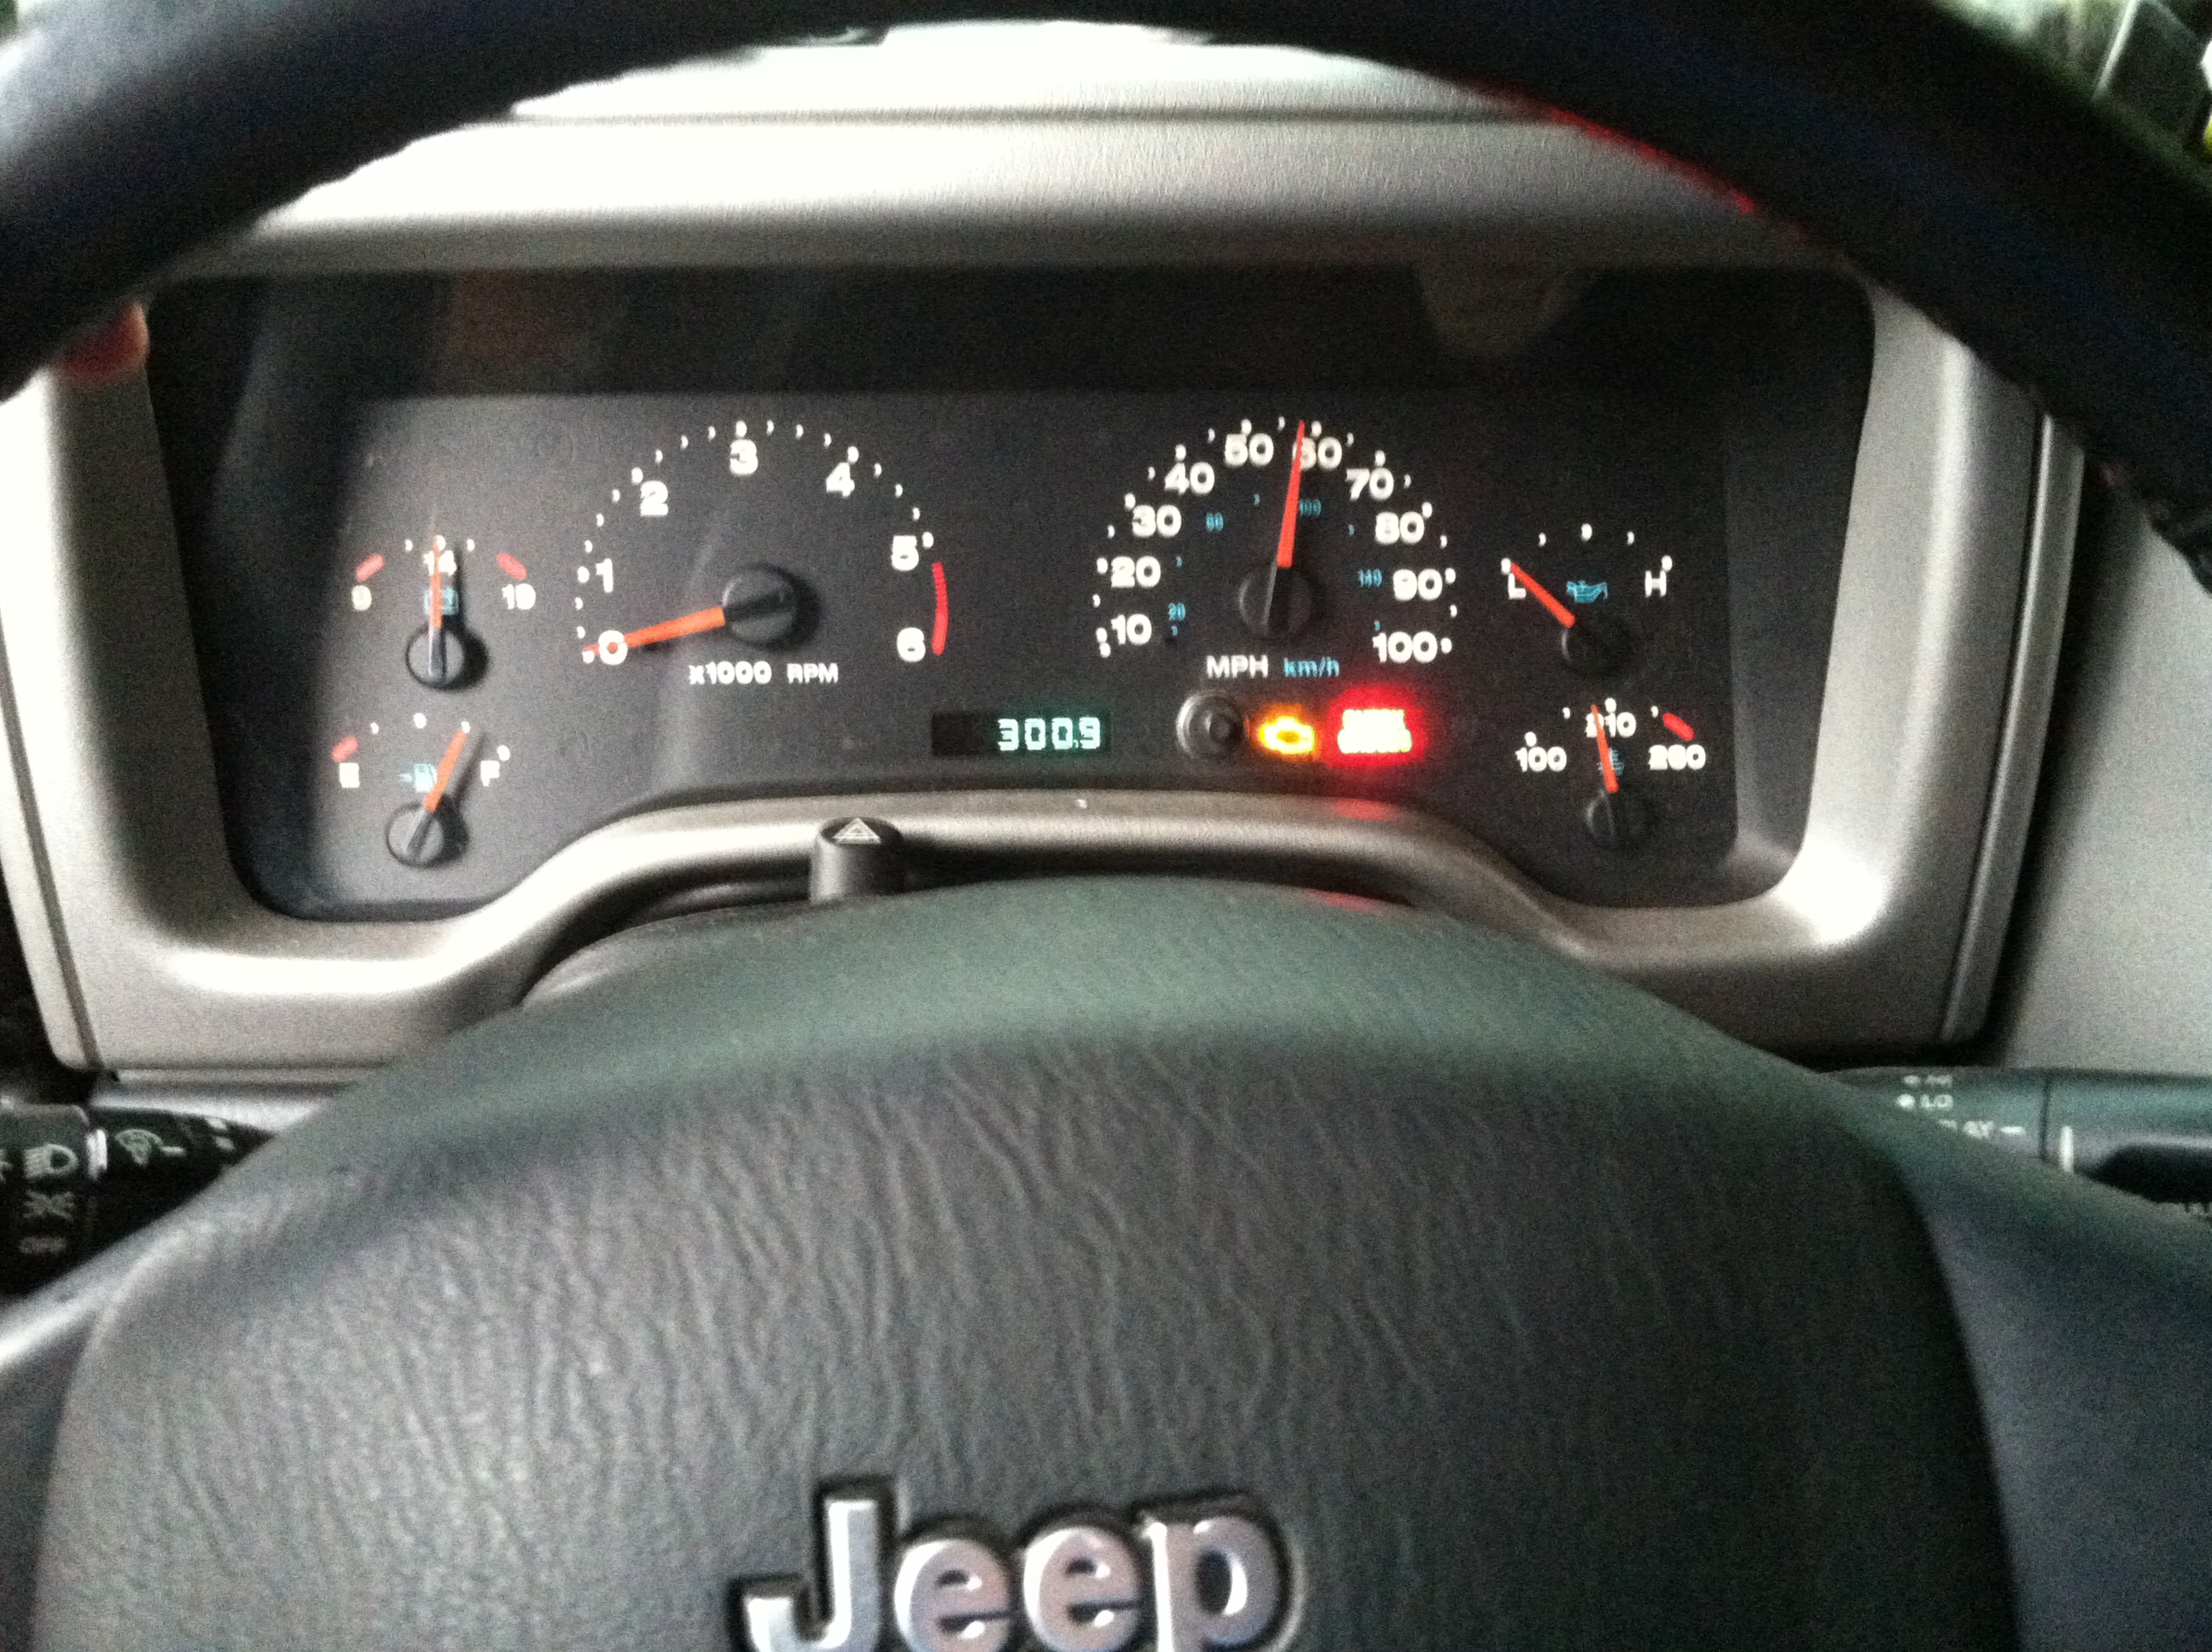 Cummins 4bt Jeep Wrangler Tj Diesel Conversion Vnutz Domain 2006 Fuel Filter Location 300 Miles With 3 4 Of A Tank Remaining Is Pretty Sweet